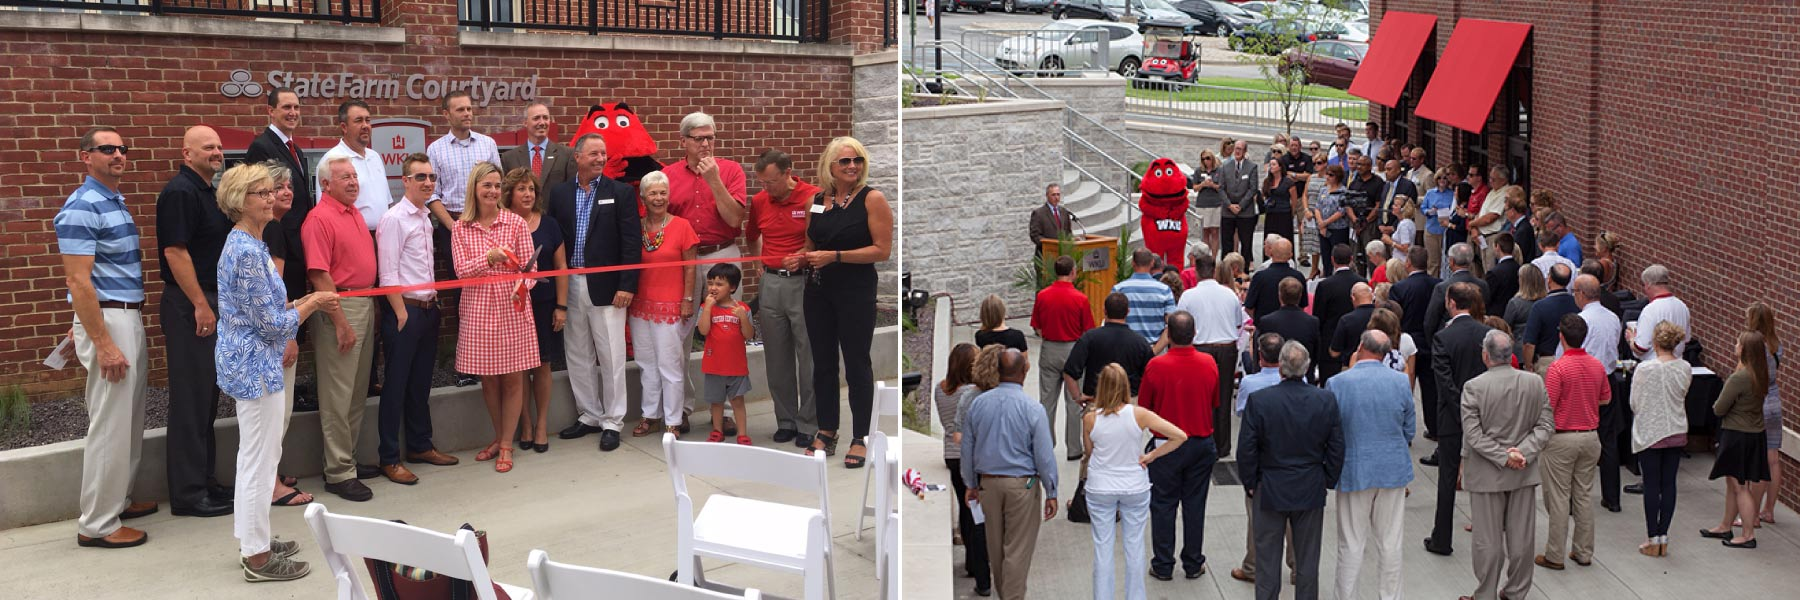 WKU Dedicates State Farm Courtyard